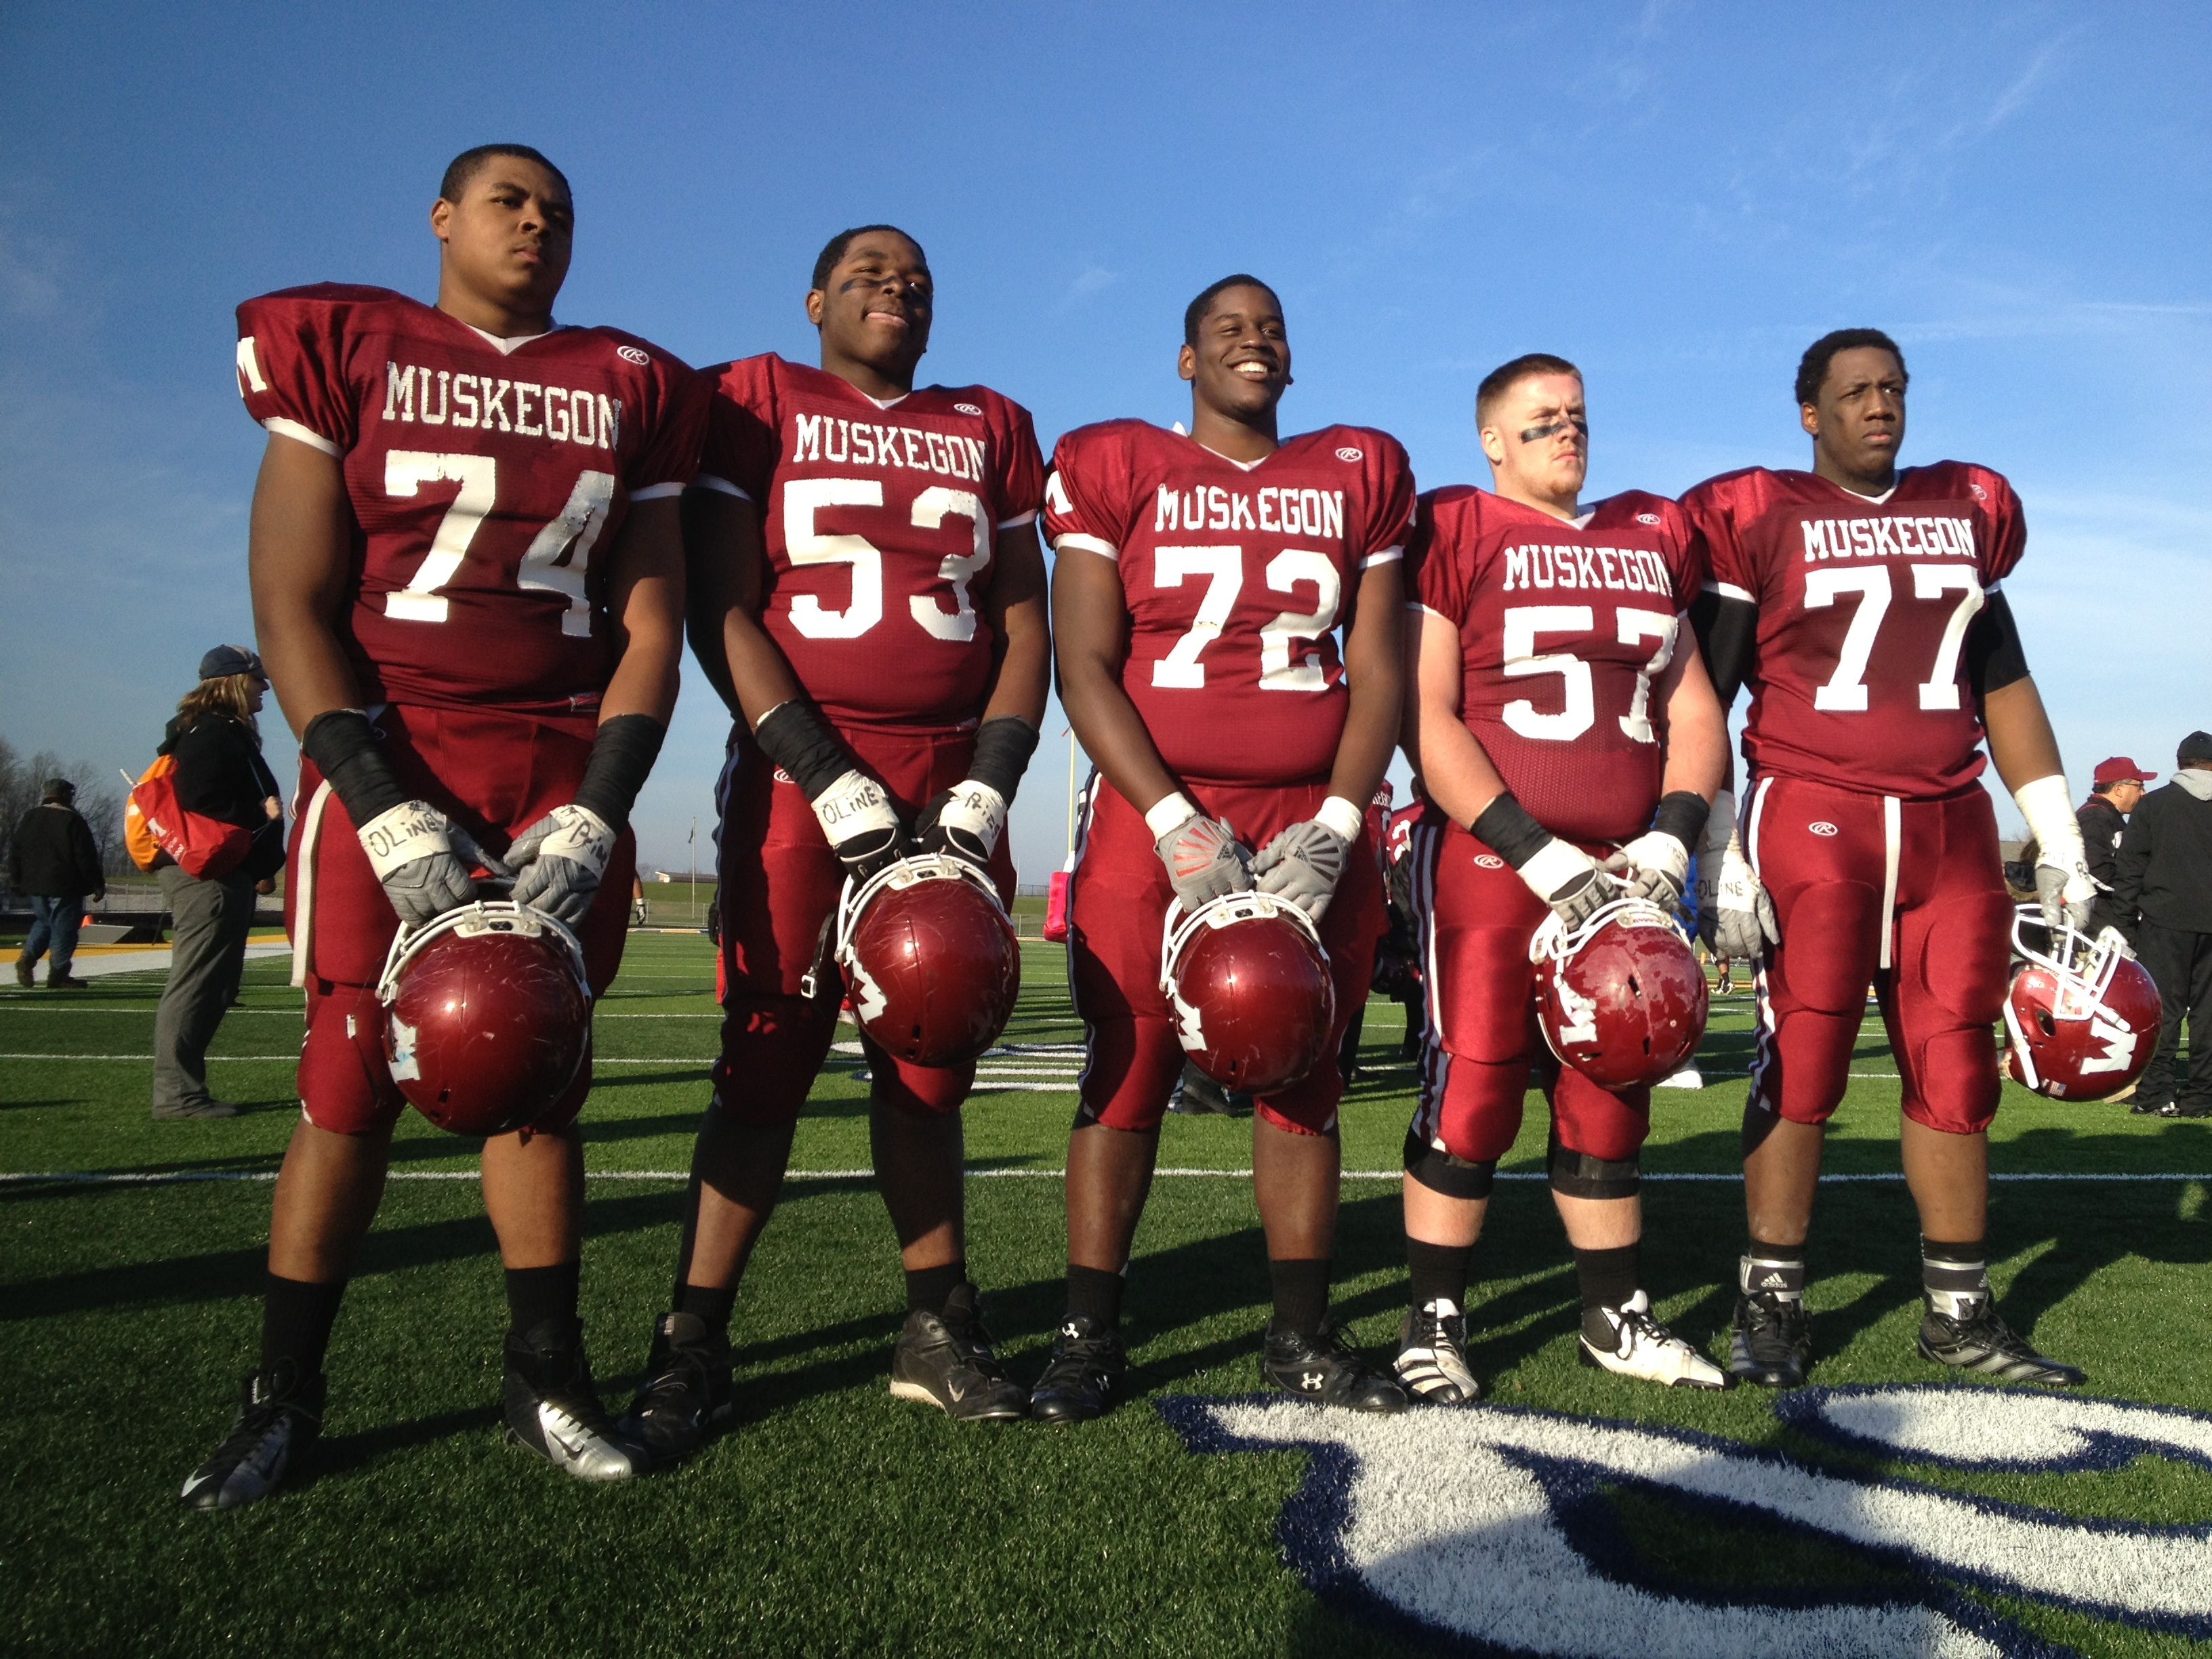 Going for 800: Looking at Muskegon High School's football glory ...